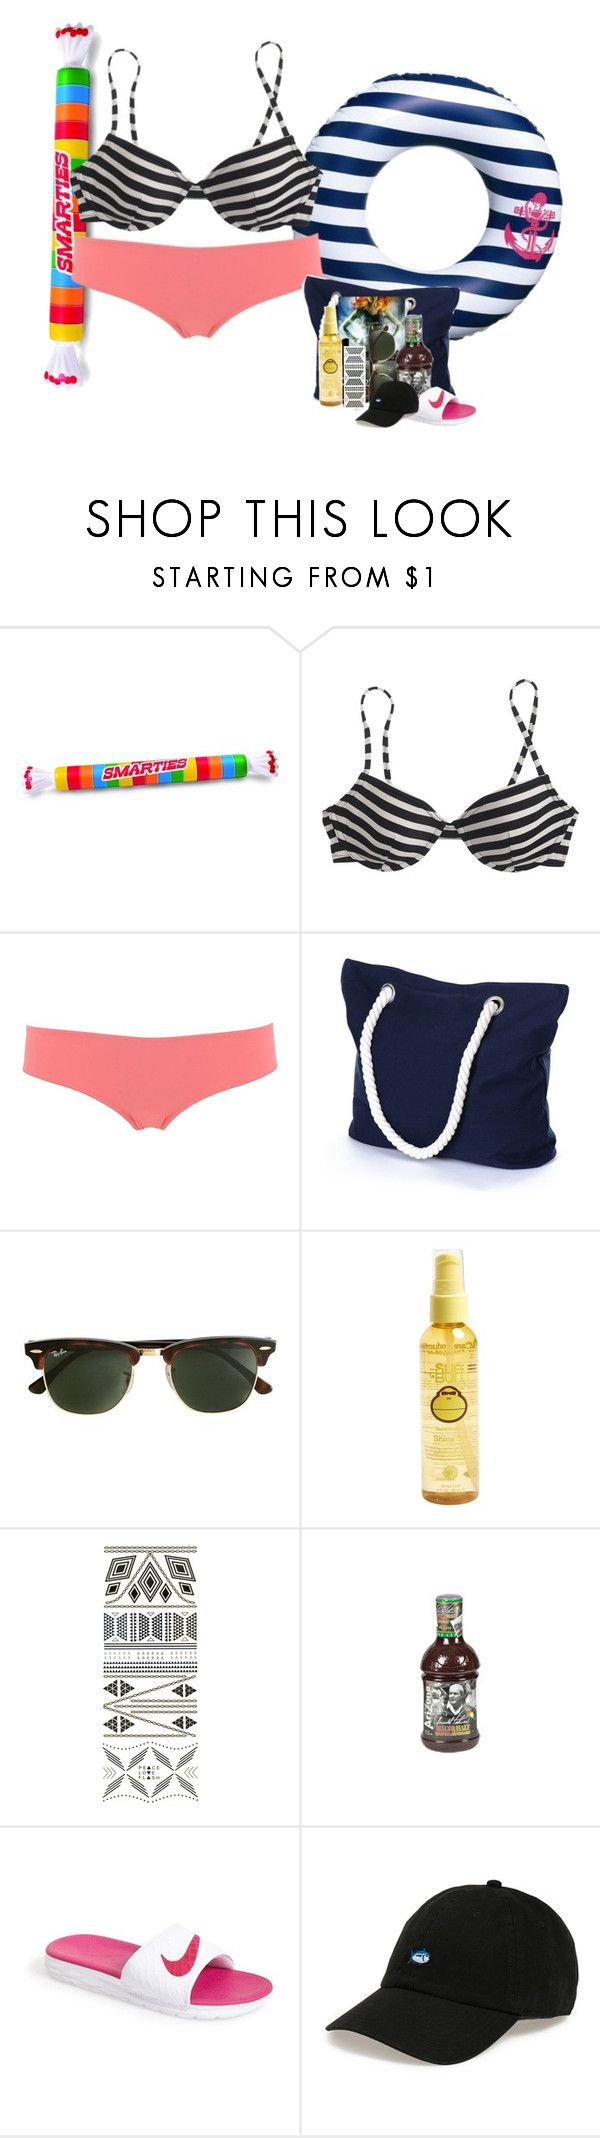 """""""Day 6: Pool"""" by meganjoleen ❤ liked on Polyvore featuring J.Crew, Calipige, Sun Bum, Flash Tattoos, NIKE, Southern Tide, women's clothing, women, female and woman"""